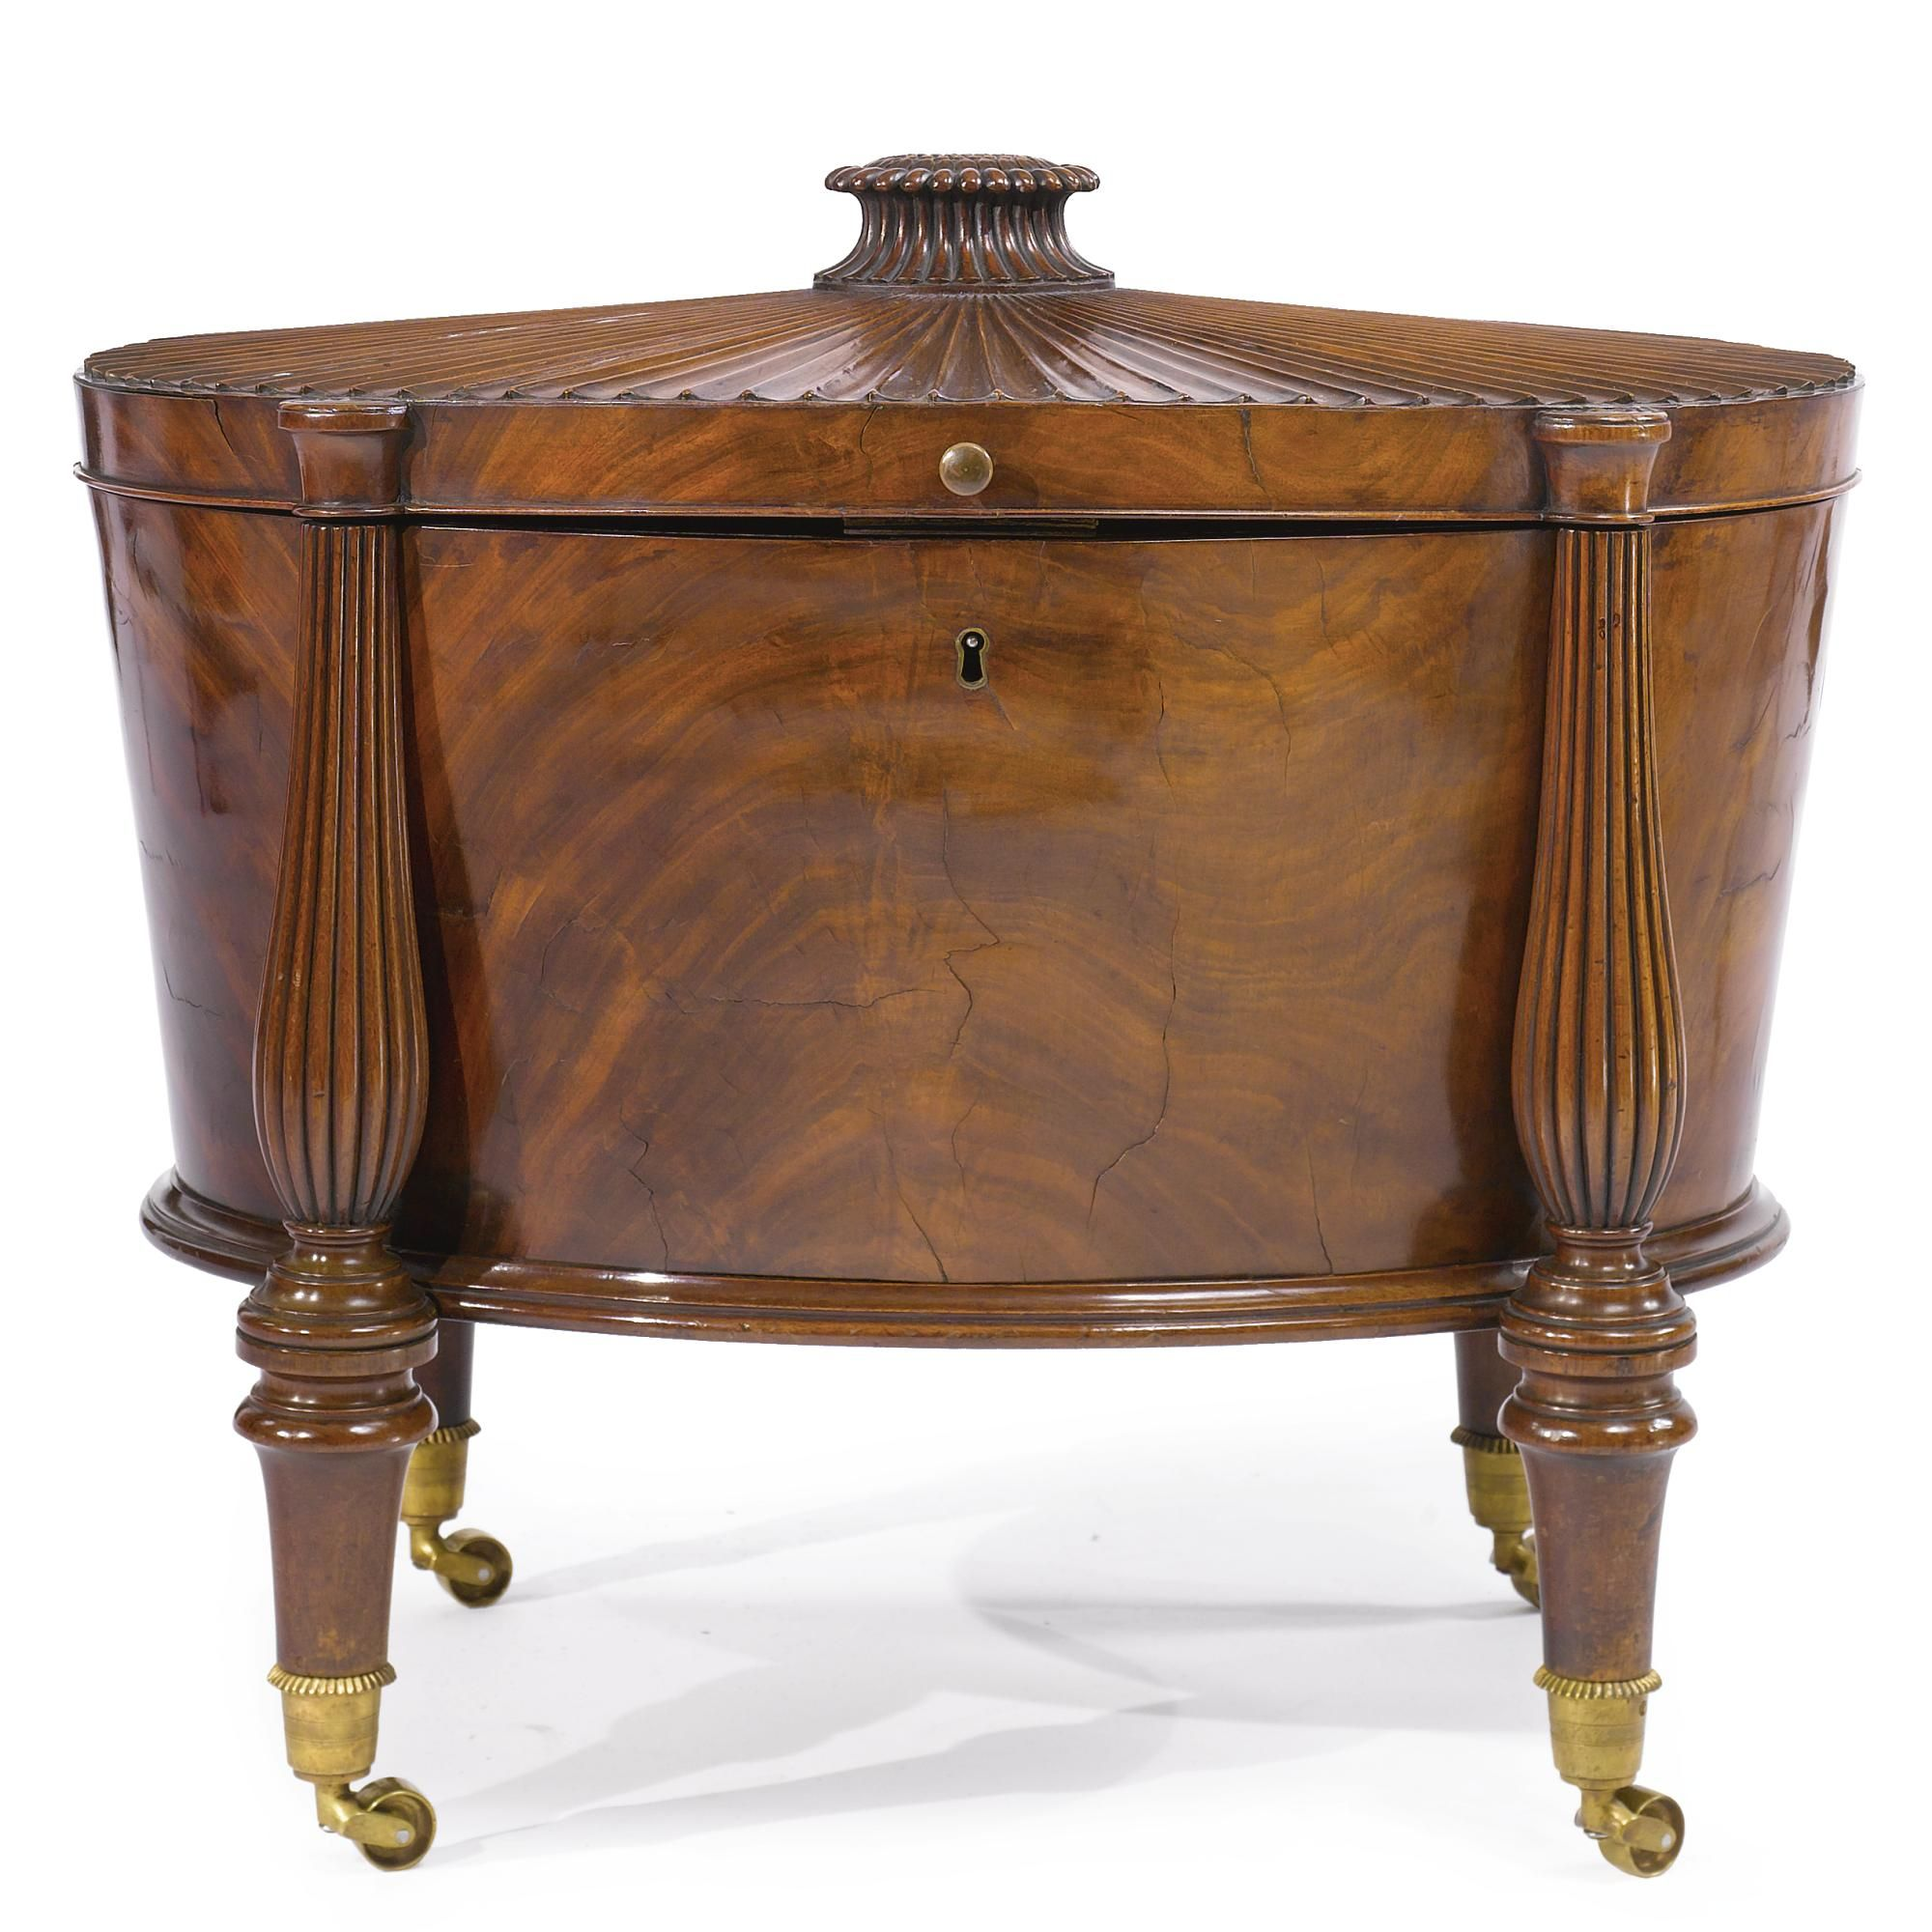 A Regency mahogany wine cooler in the manner of Gillows circa 1810